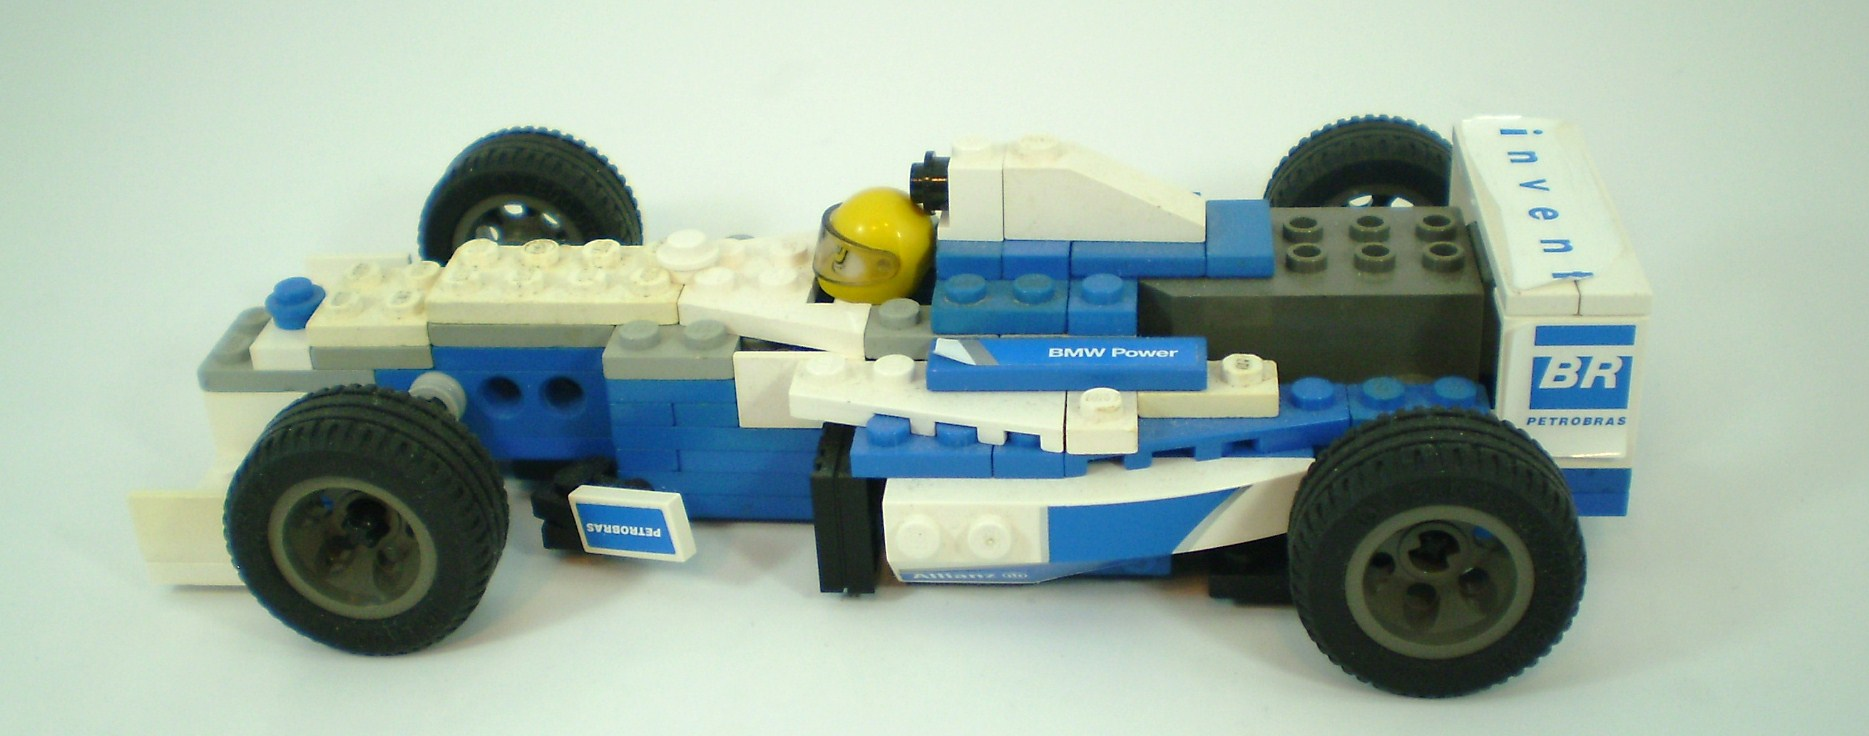 formula1_williams_bmw_04.jpg